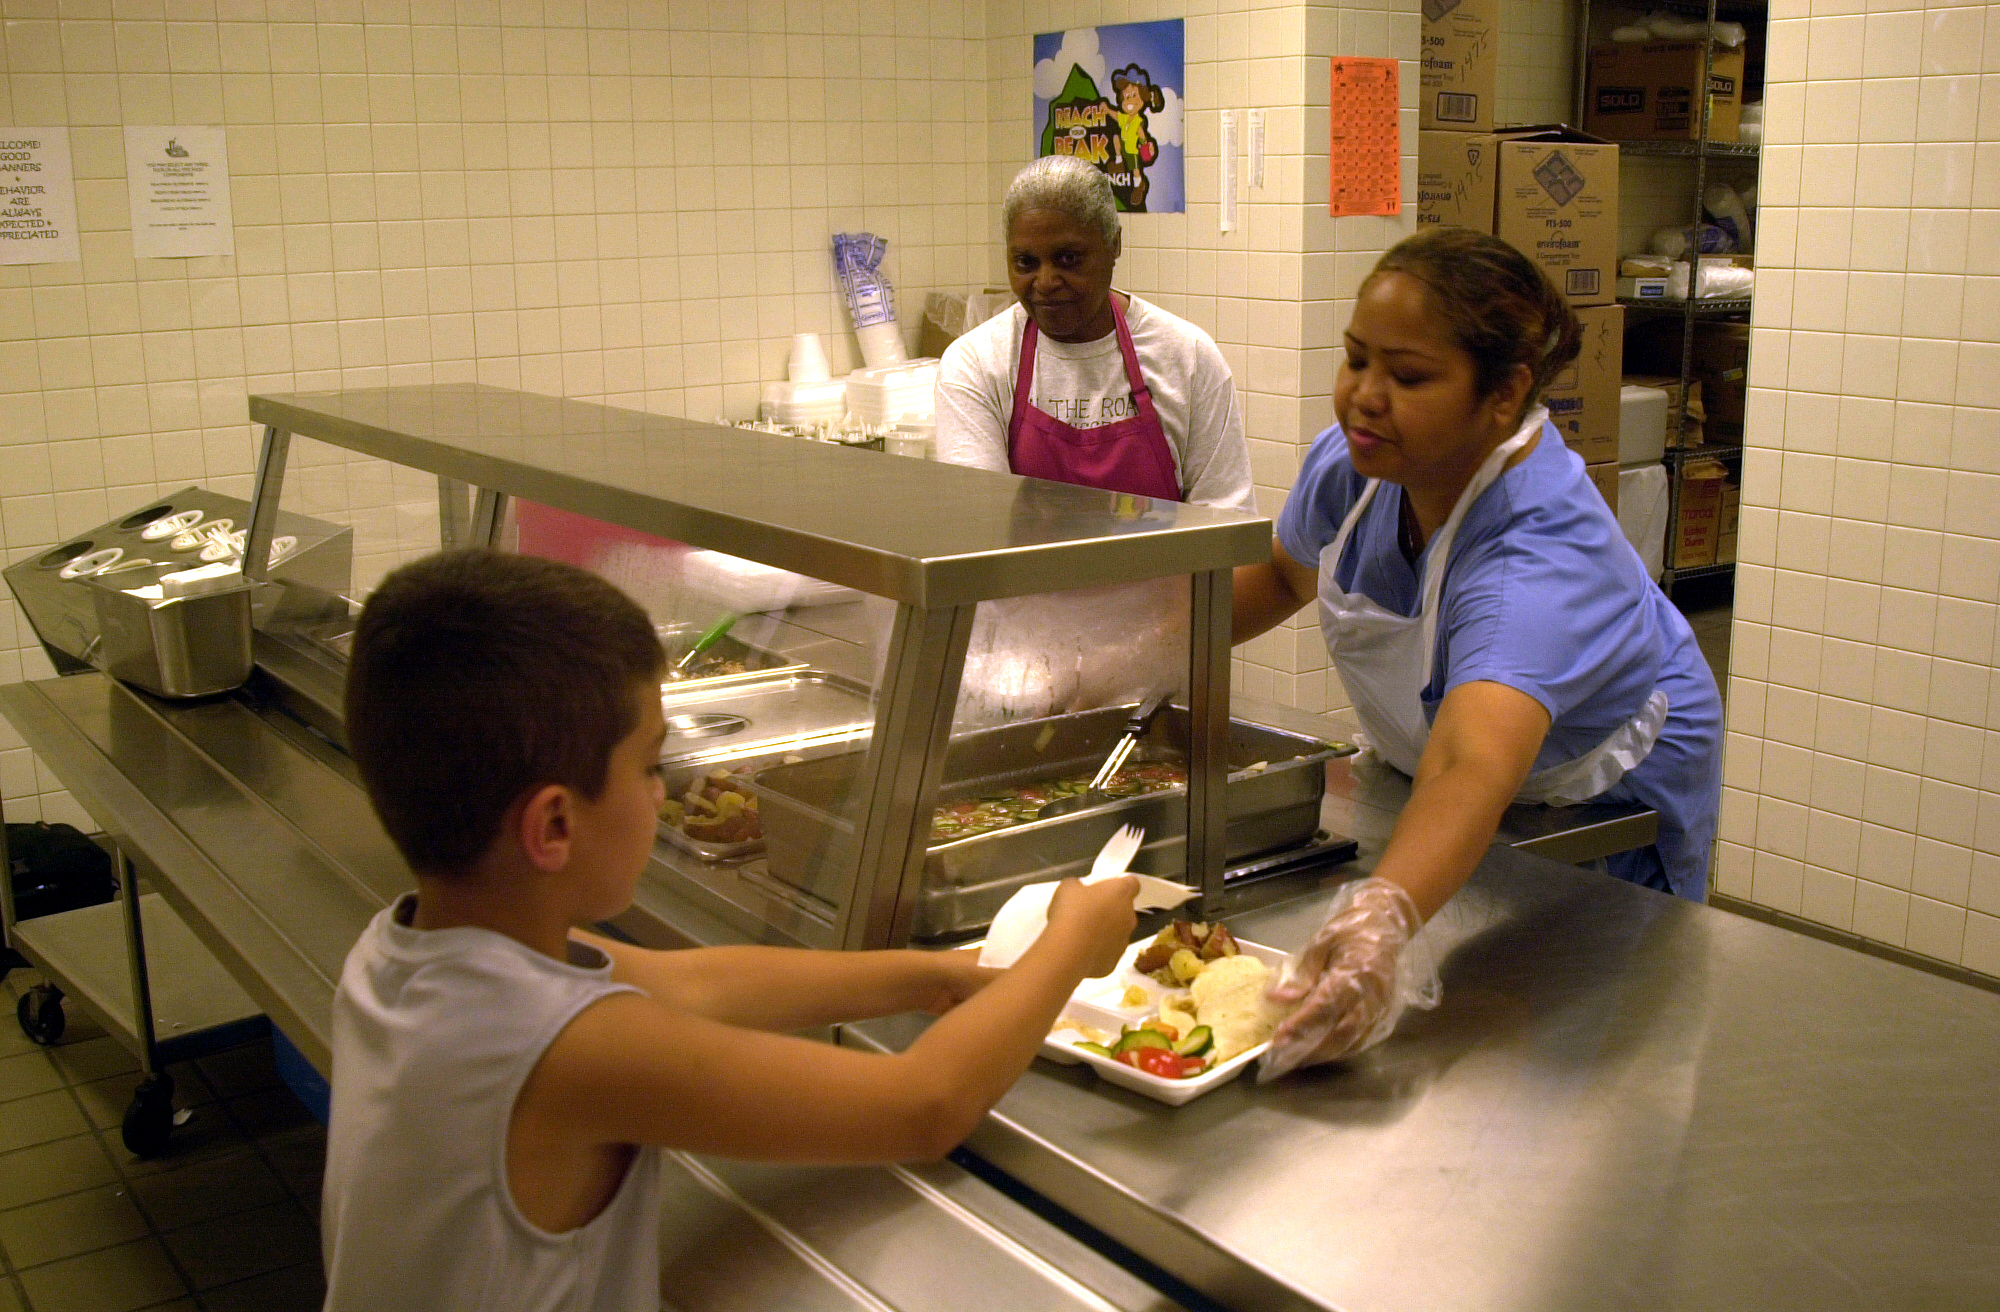 MARINE CORPS BASE CAMP LEJEUNE, N.C. – Aurora Paltt a cafeteria worker at Tarawa Terrance II Elementary School serves a child a lunch here July 11. Preschoolers to 18-year-olds can get a free lunch from Department of Defense Dependent Schools at Tarawa Terrance II Elementary School and Brewster Middle School. (Official U.S. Marine Corps photo by Lance Cpl. Brandon R. Holgersen)